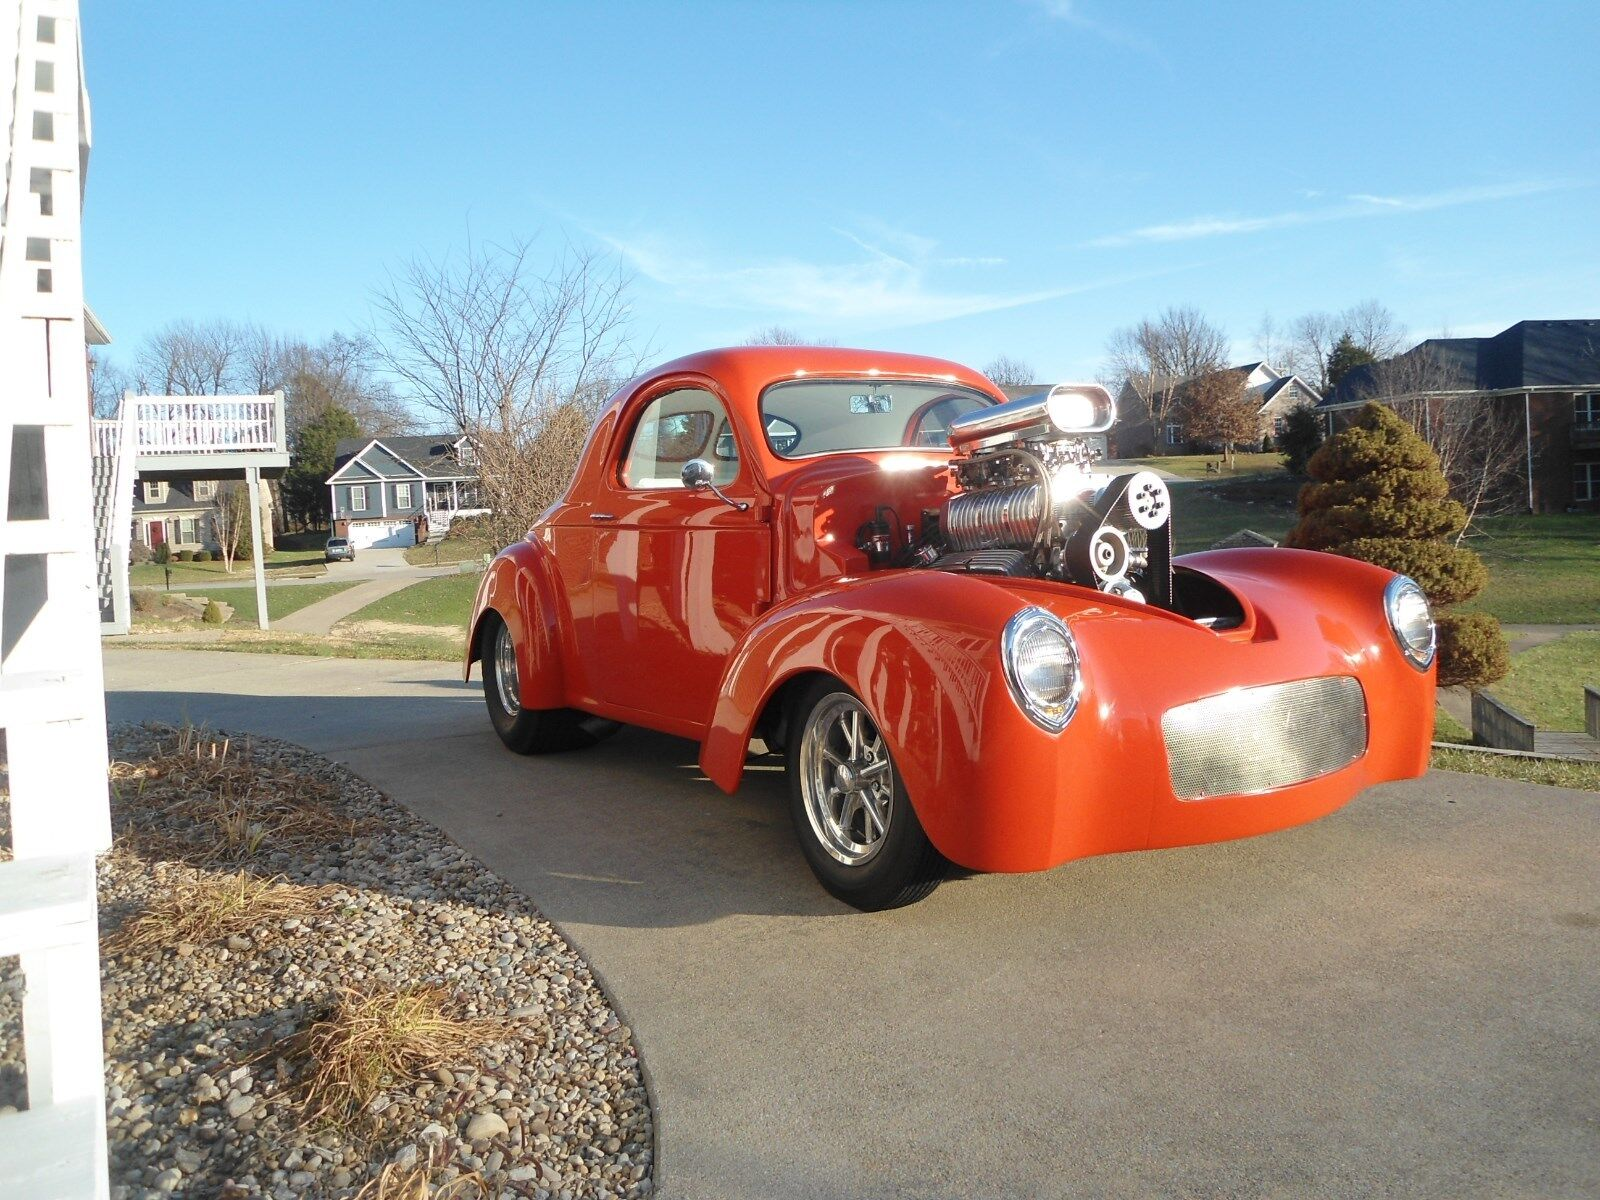 1941 Willys 439  1941 Willy's Coupe Gasser, Outlaw Body, 383ci with b&m blower